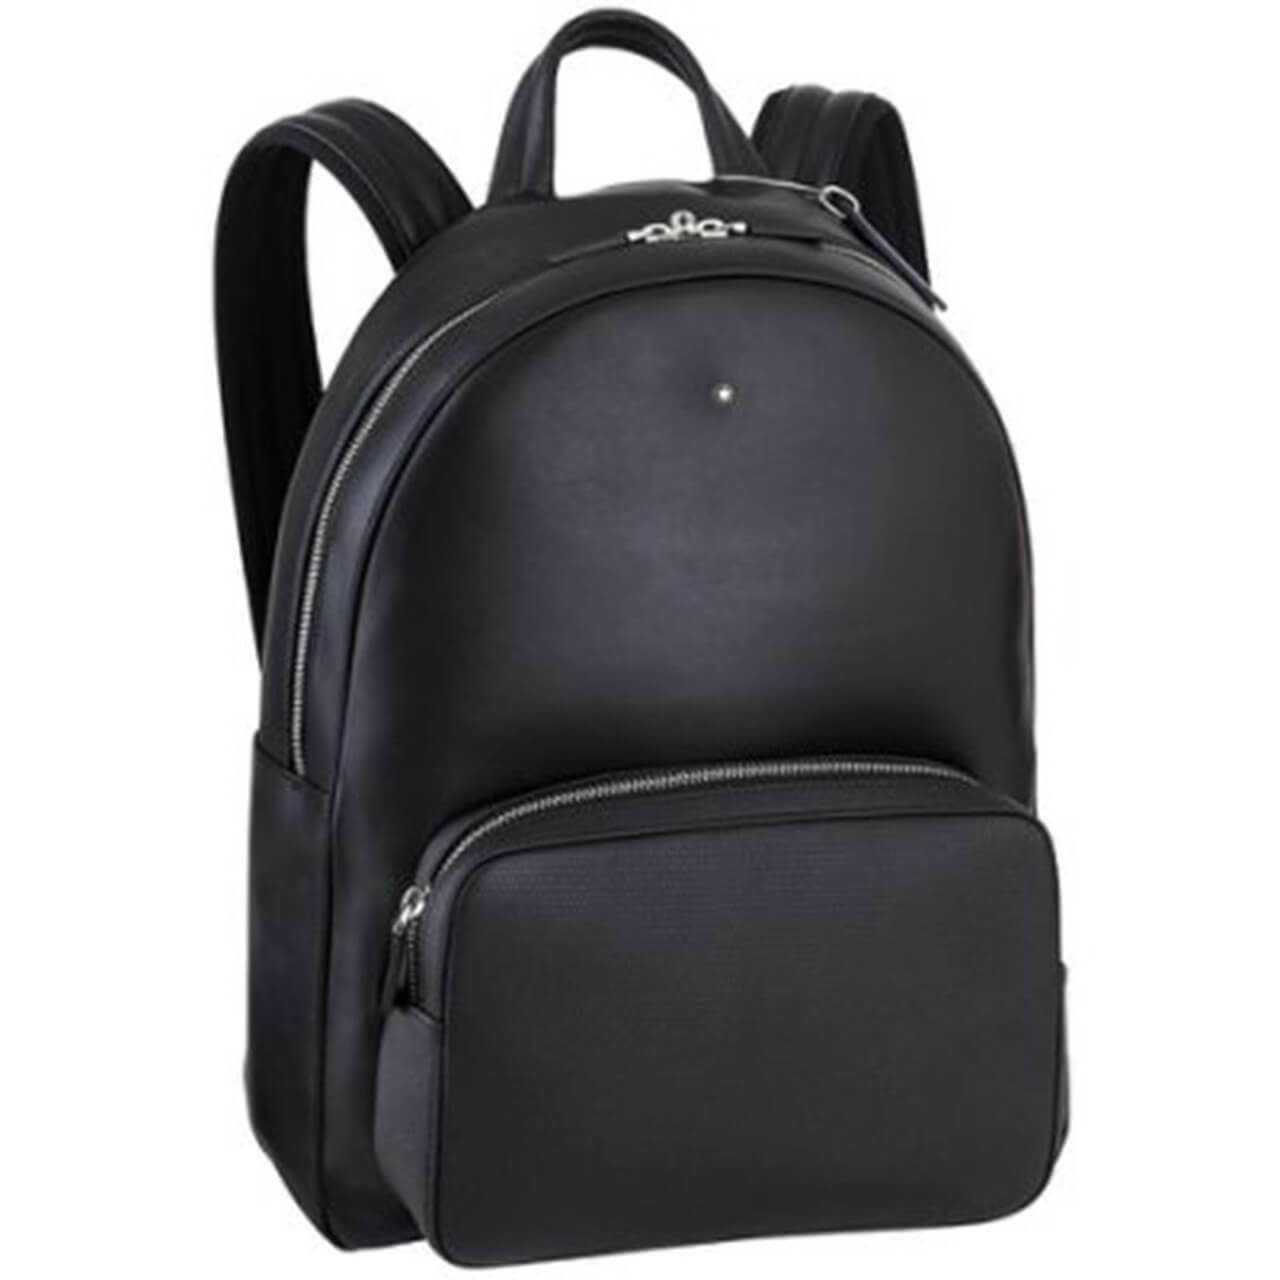 Montblanc meisterstuck citybag unicef black leather backpack